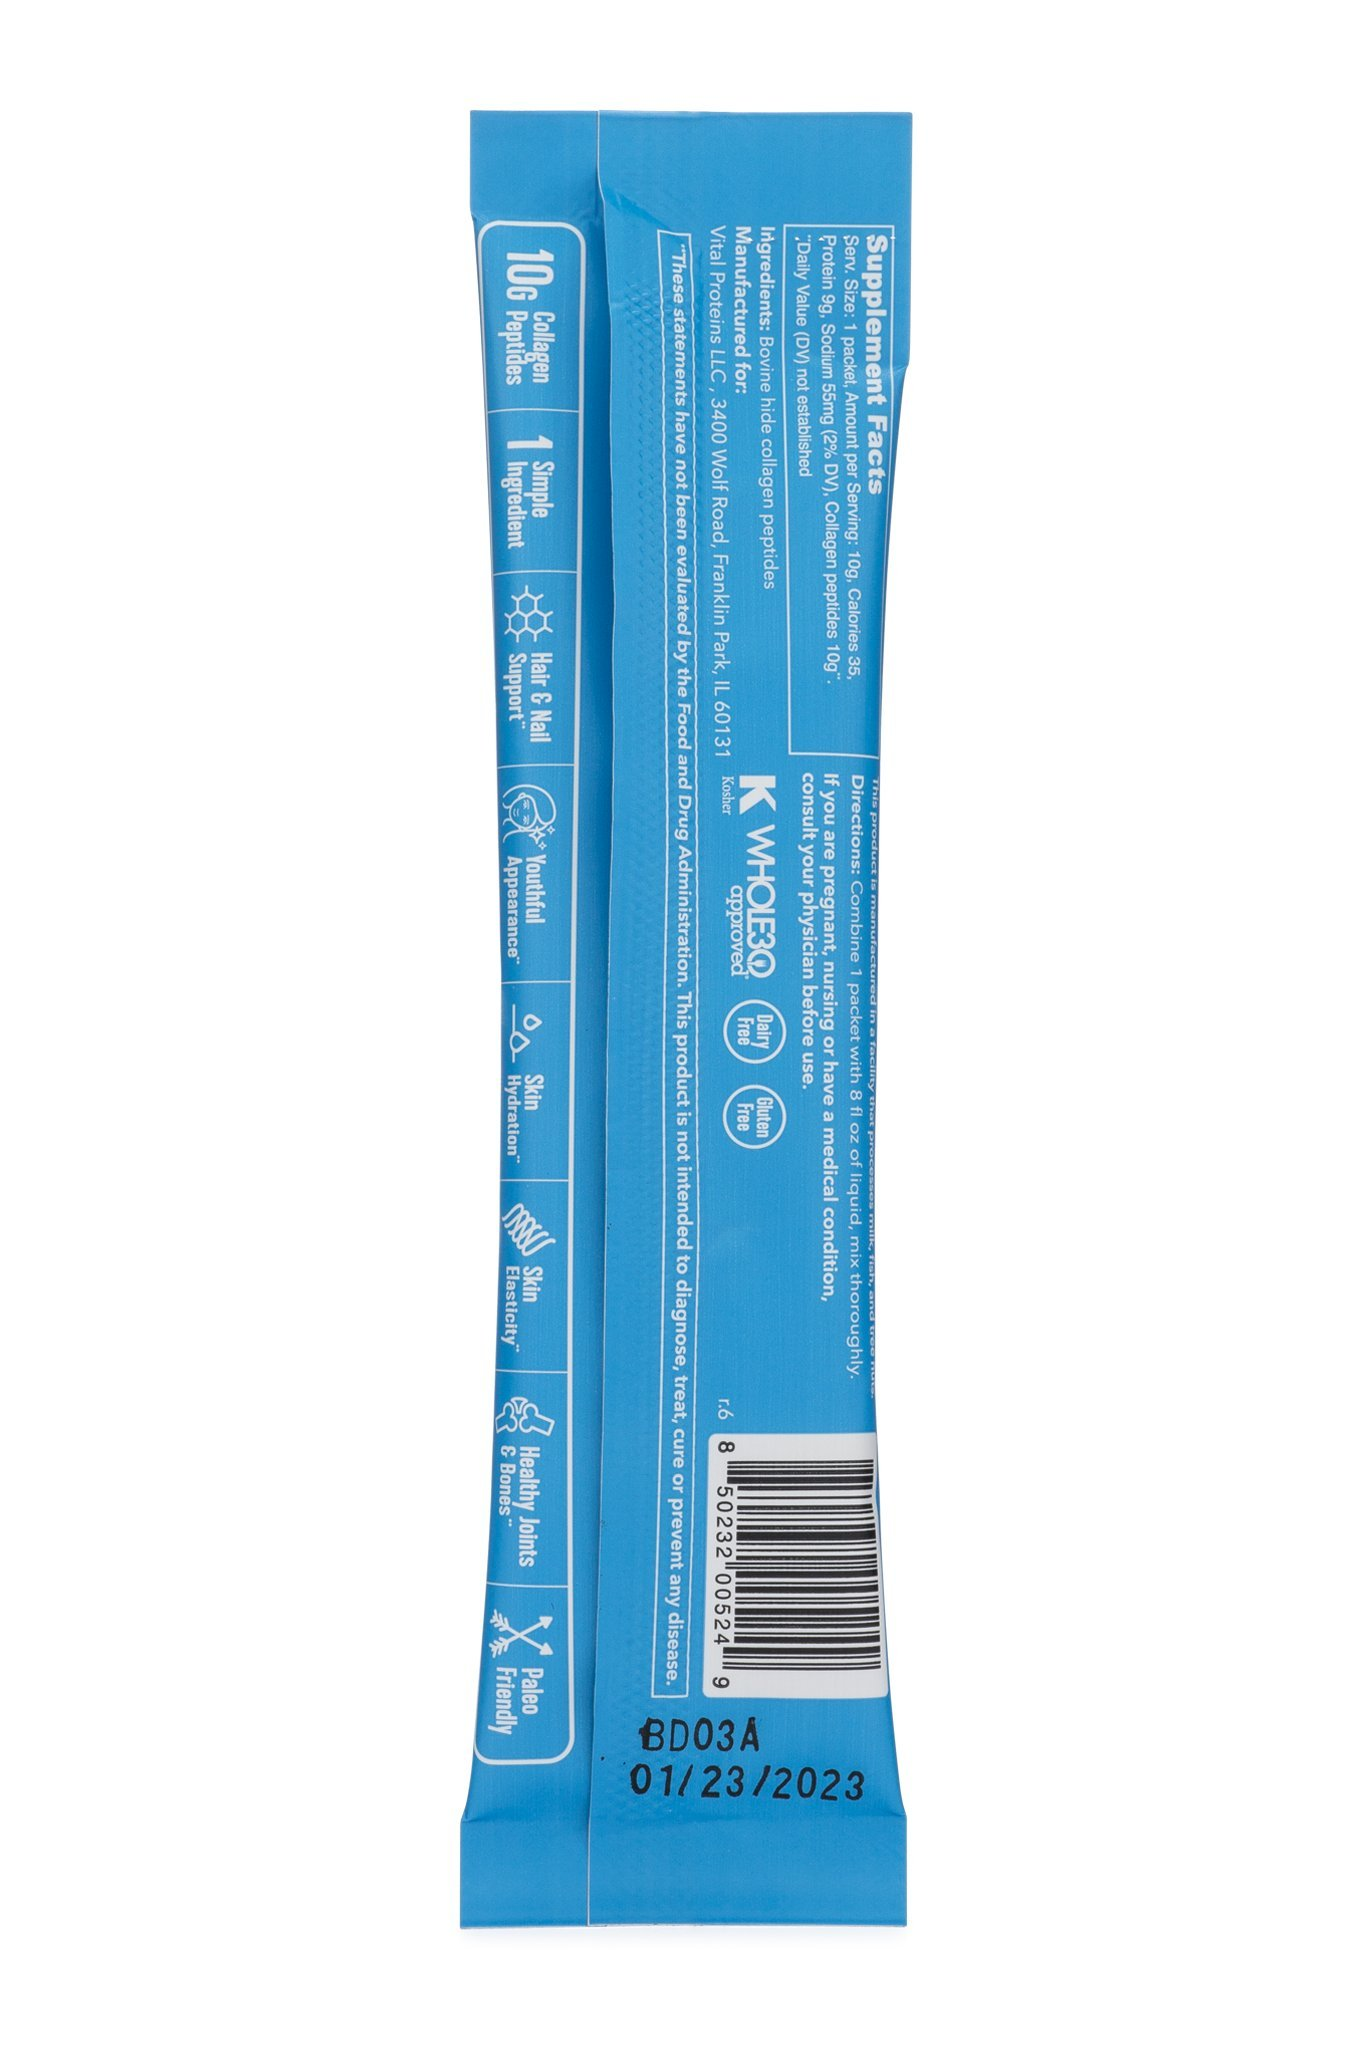 Vital Proteins Collagen Powder Stick Packs - 20ct - Hydrolyzed Collagen on The go, Dairy Free, Gluten Free by Vital Proteins (Image #3)